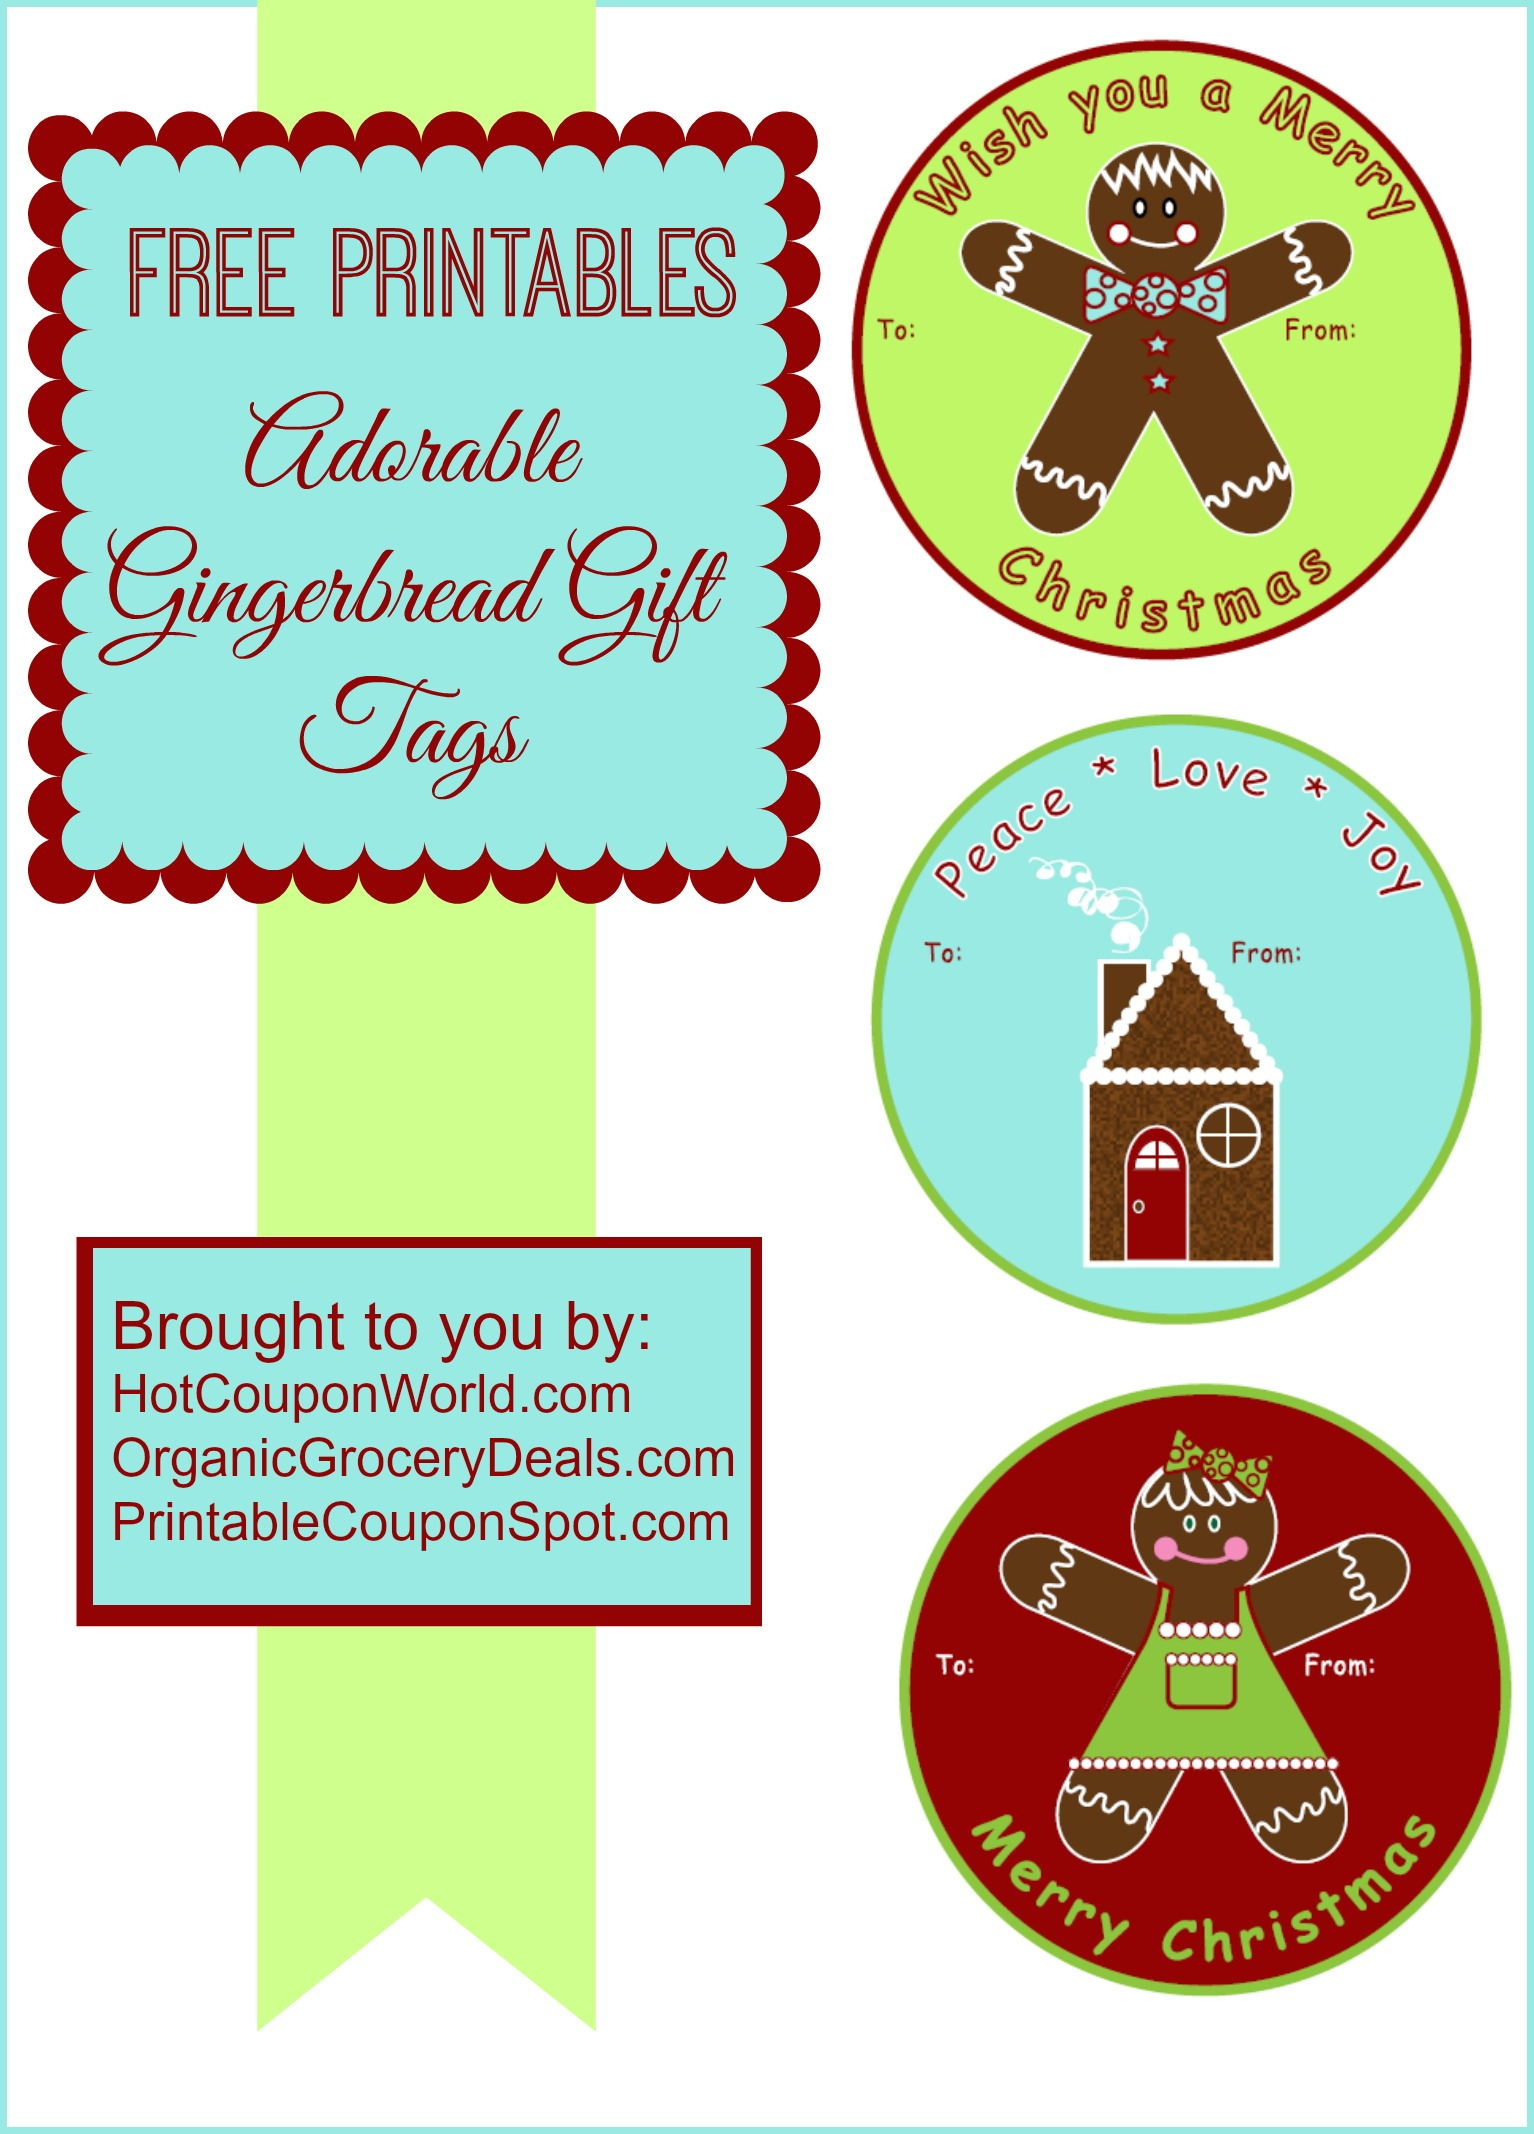 4 Images of Free Printable Gingerbread Gift Tags